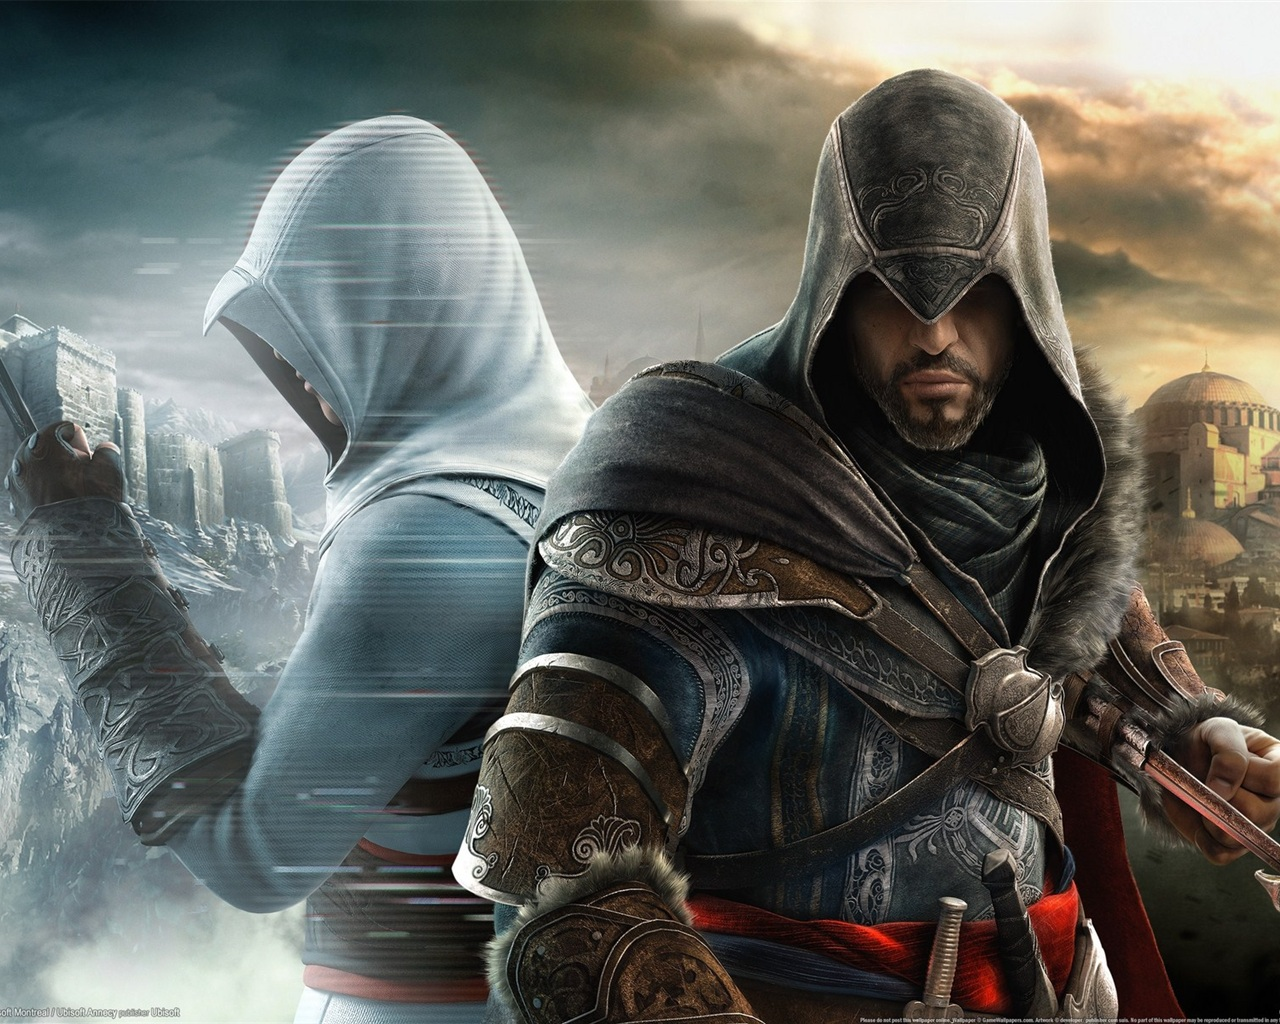 49+ Assassin's Creed 3 Wallpaper 1280x1024 on ...